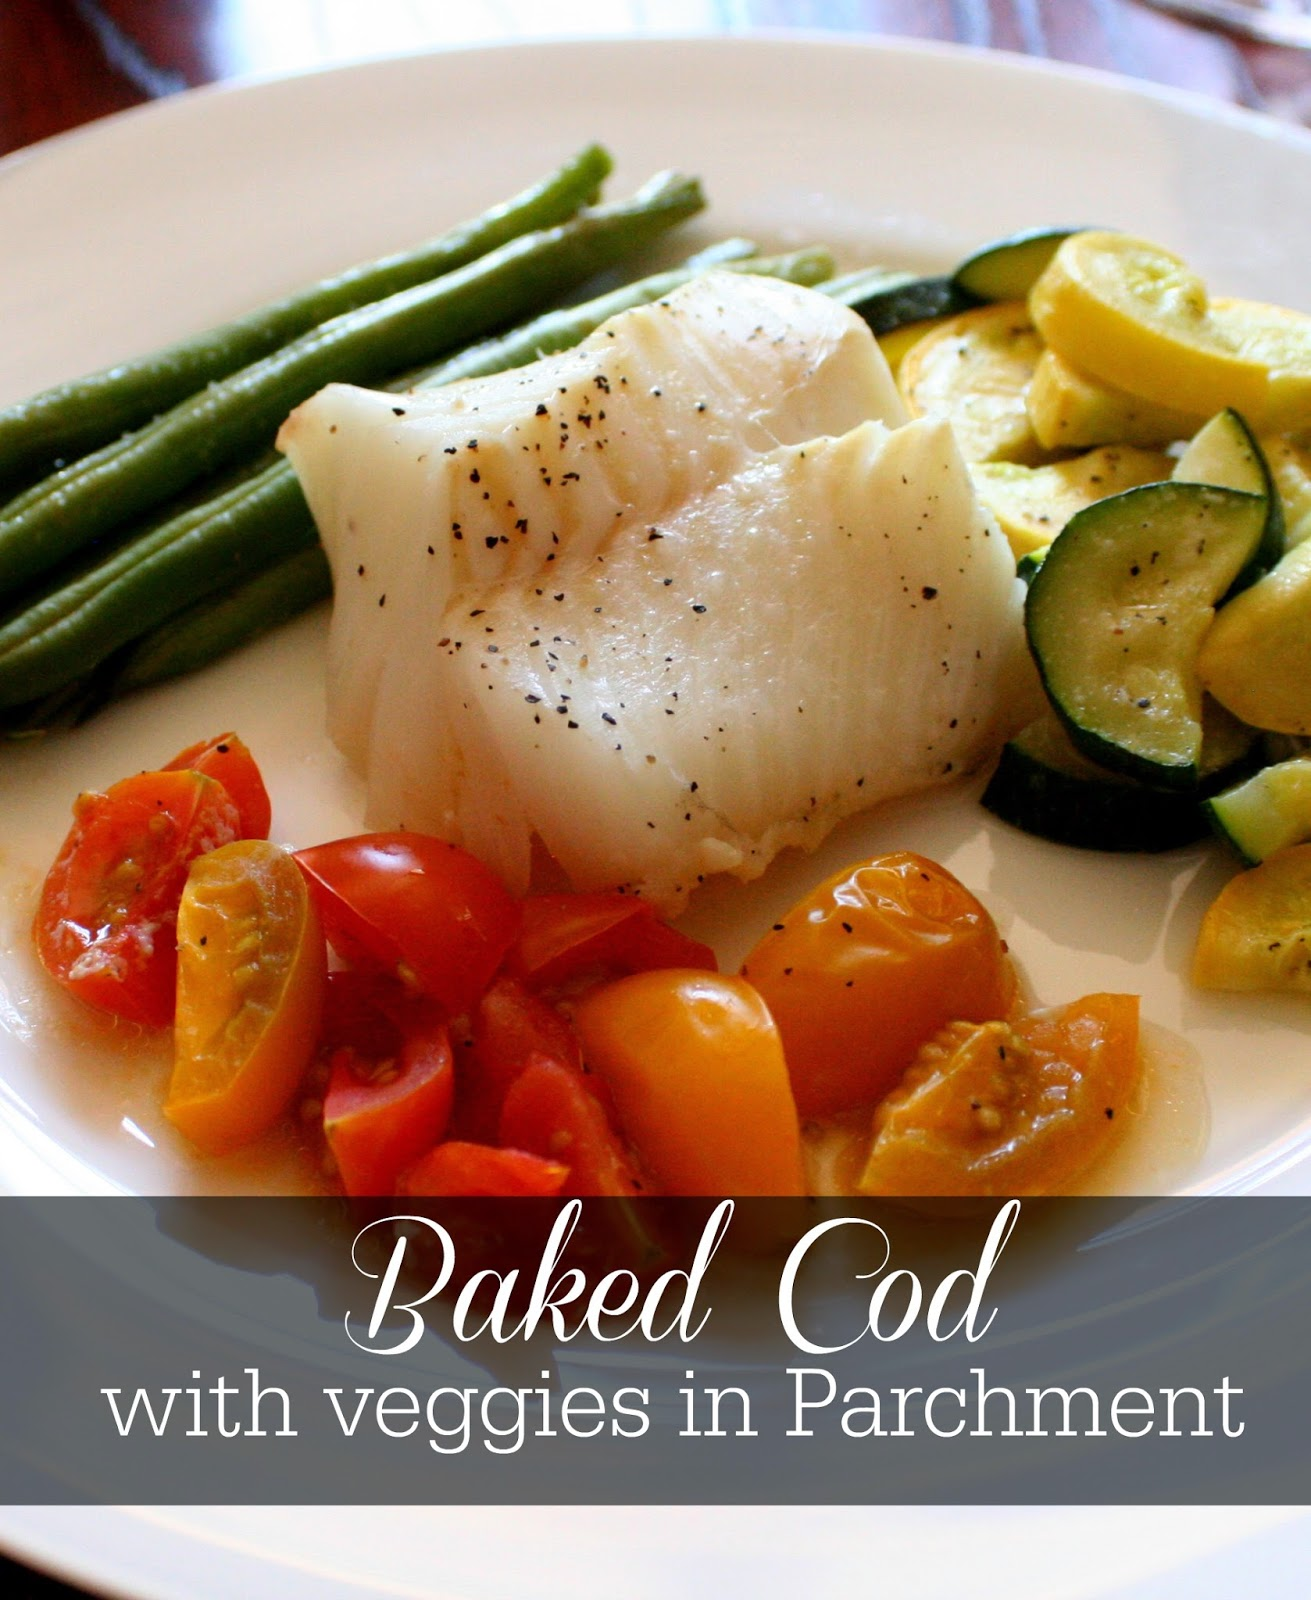 Jordan's Onion: Baked Cod with Veggies in Parchment